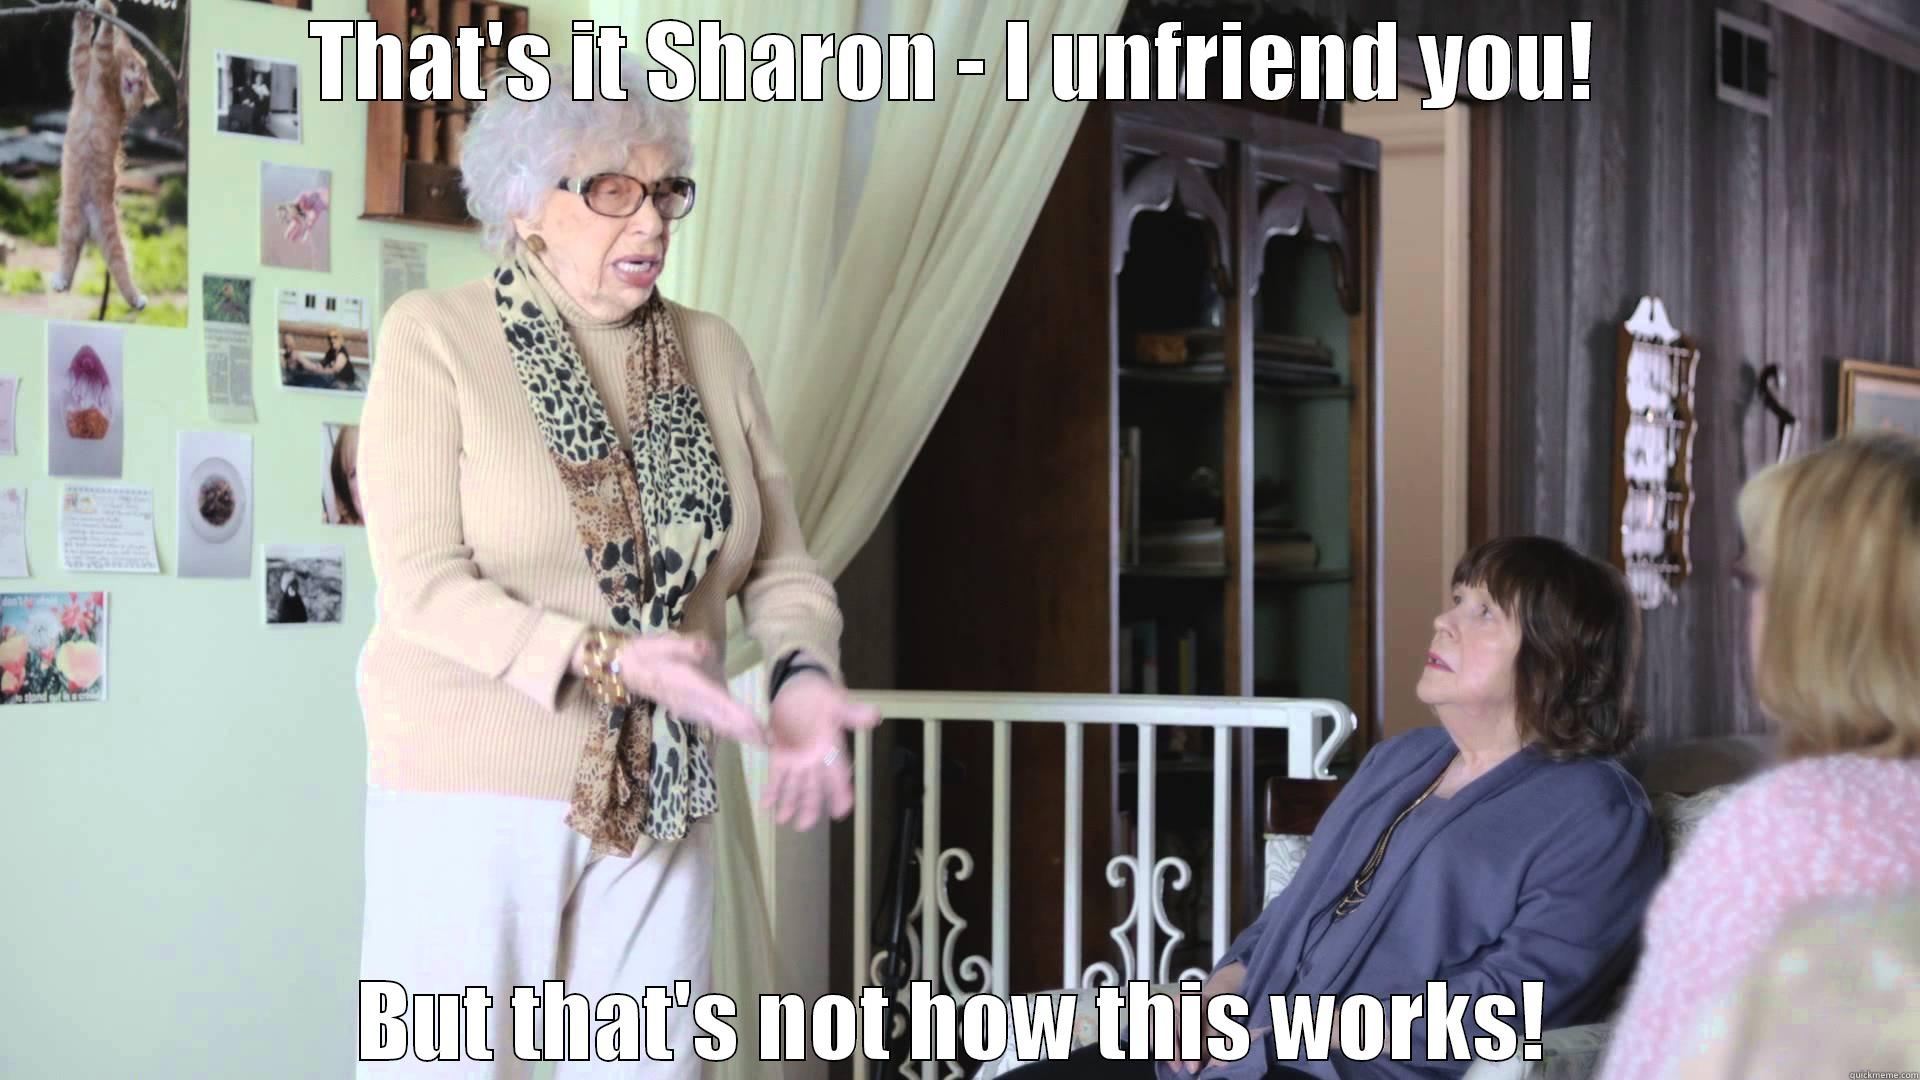 Beatrice unfriend you - THAT'S IT SHARON - I UNFRIEND YOU! BUT THAT'S NOT HOW THIS WORKS! Misc